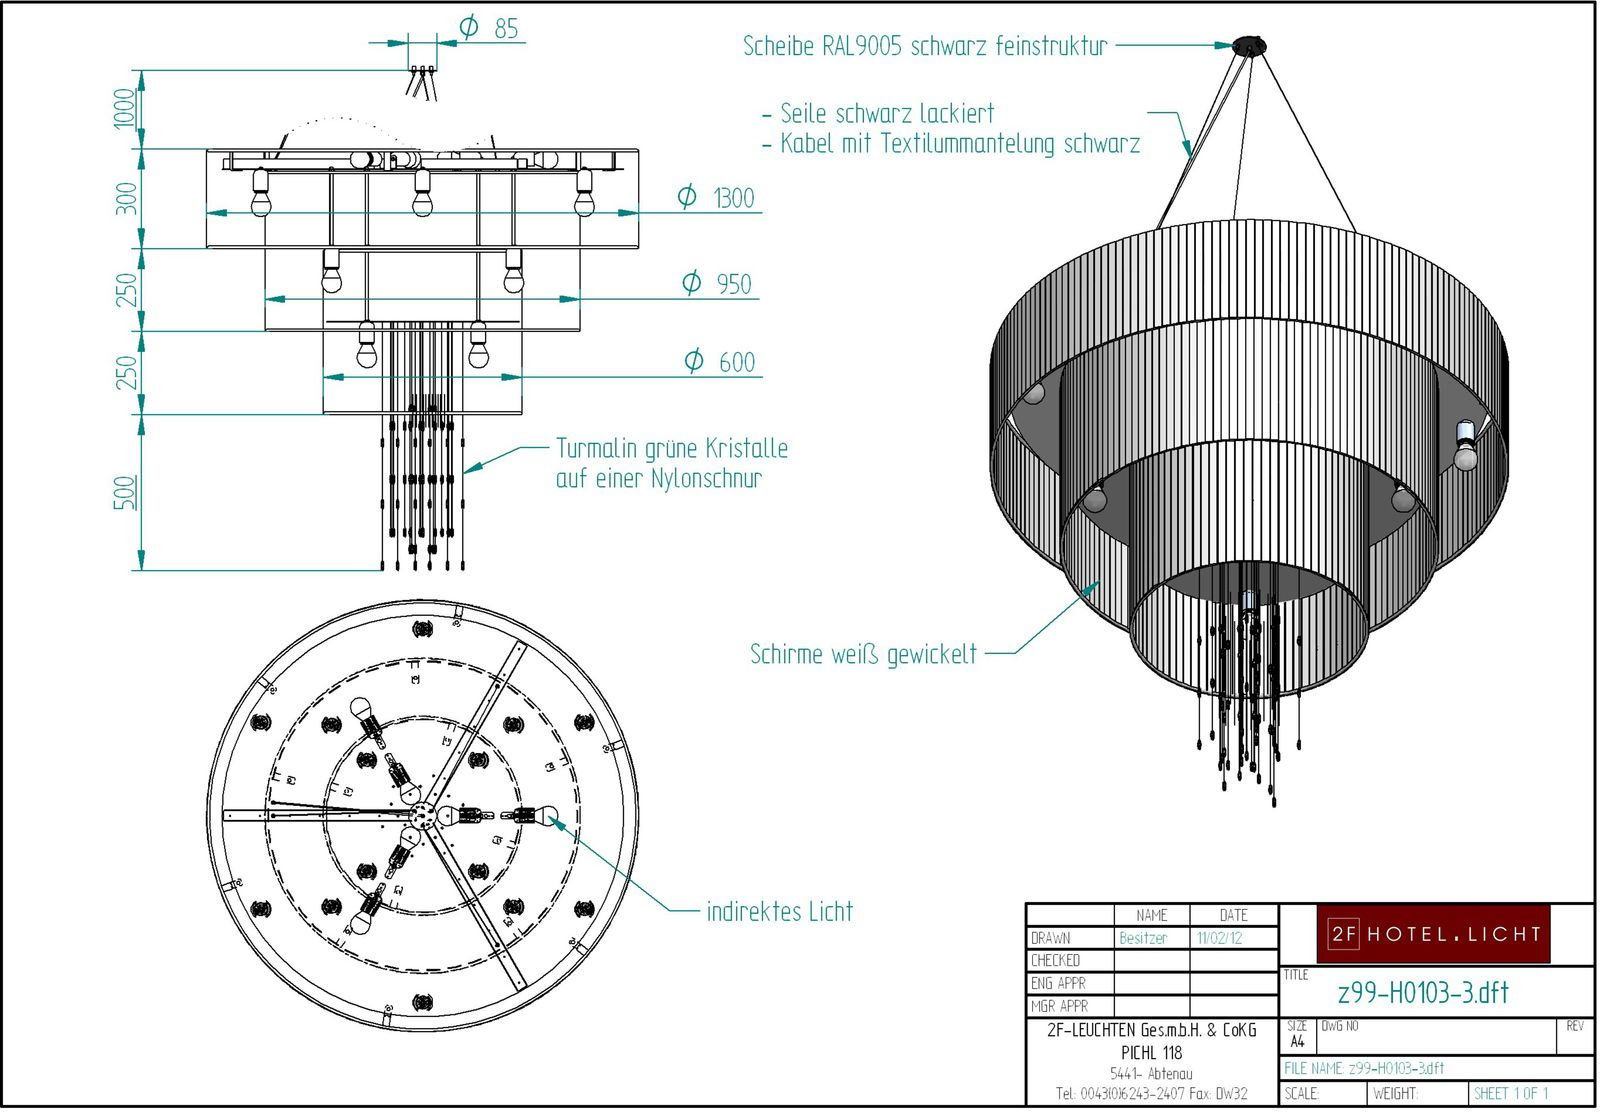 pendant lamp, lenght=600mm, height=1900mm black, techn. details: 1xE27, A60 150W 230V